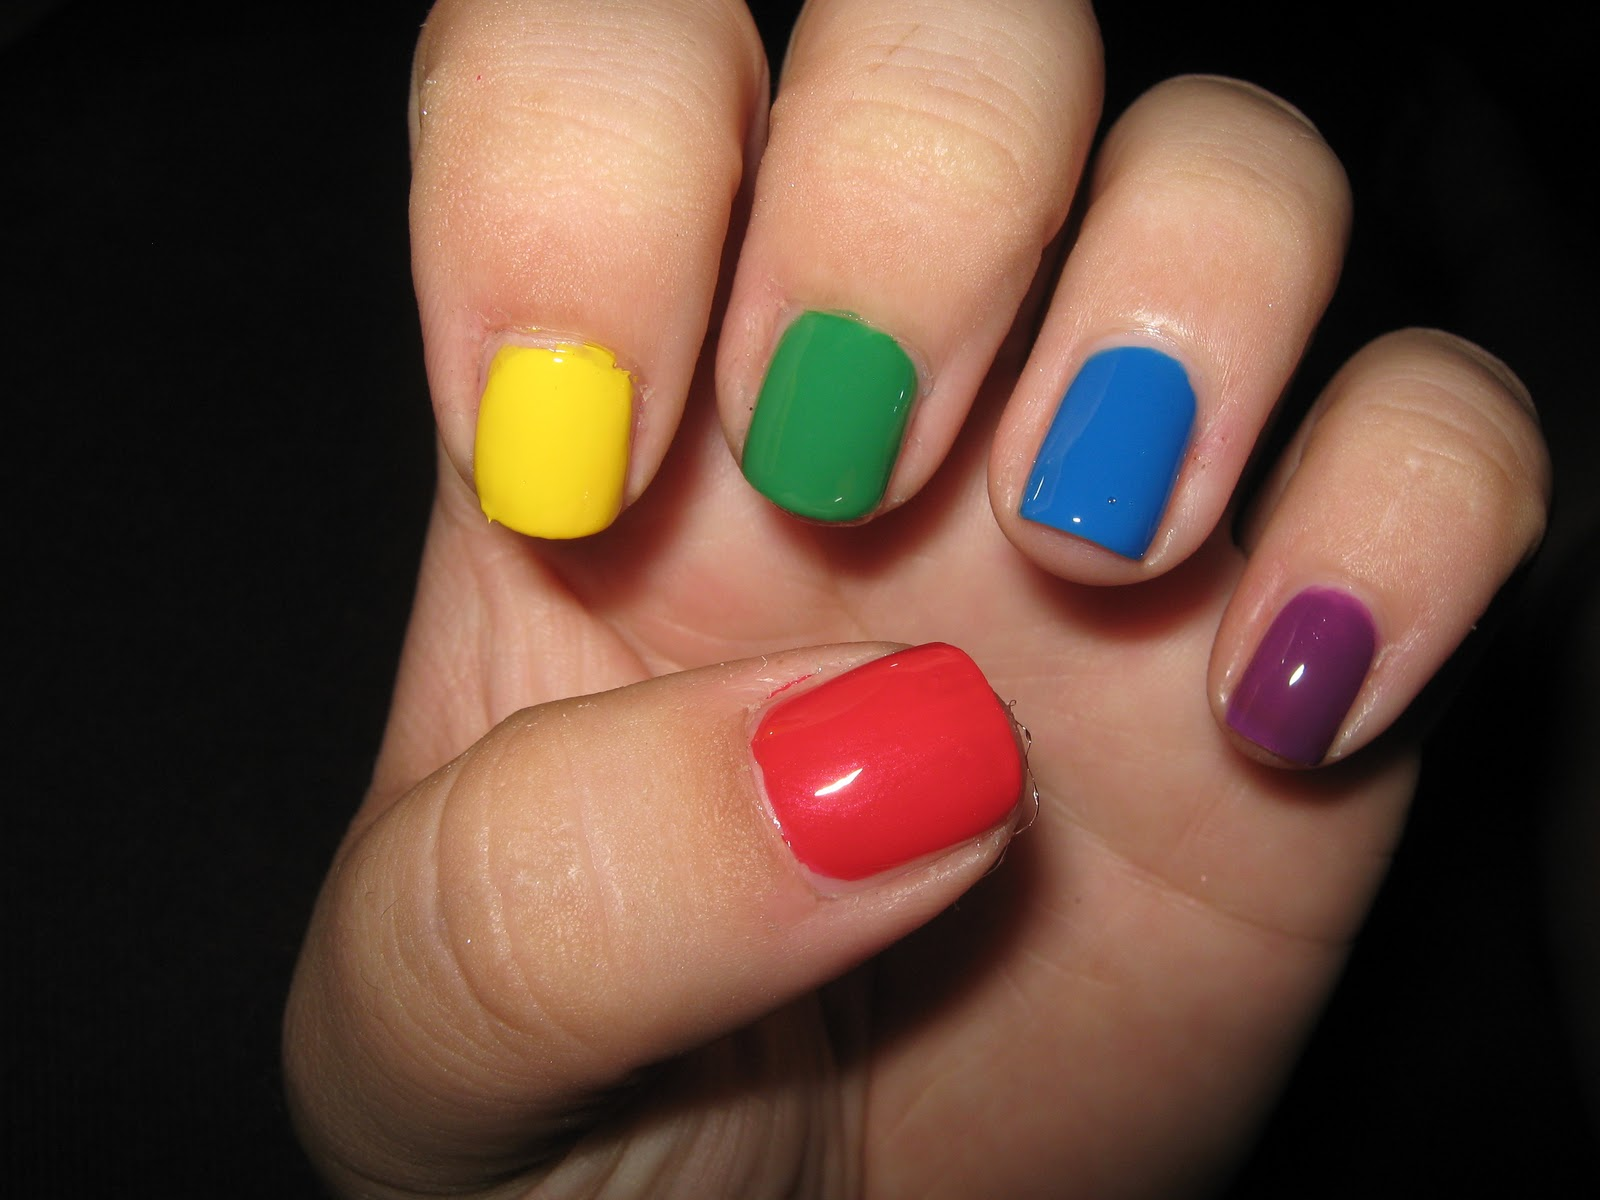 Okay so the funky rainbow coloured nails… cool but more suited to